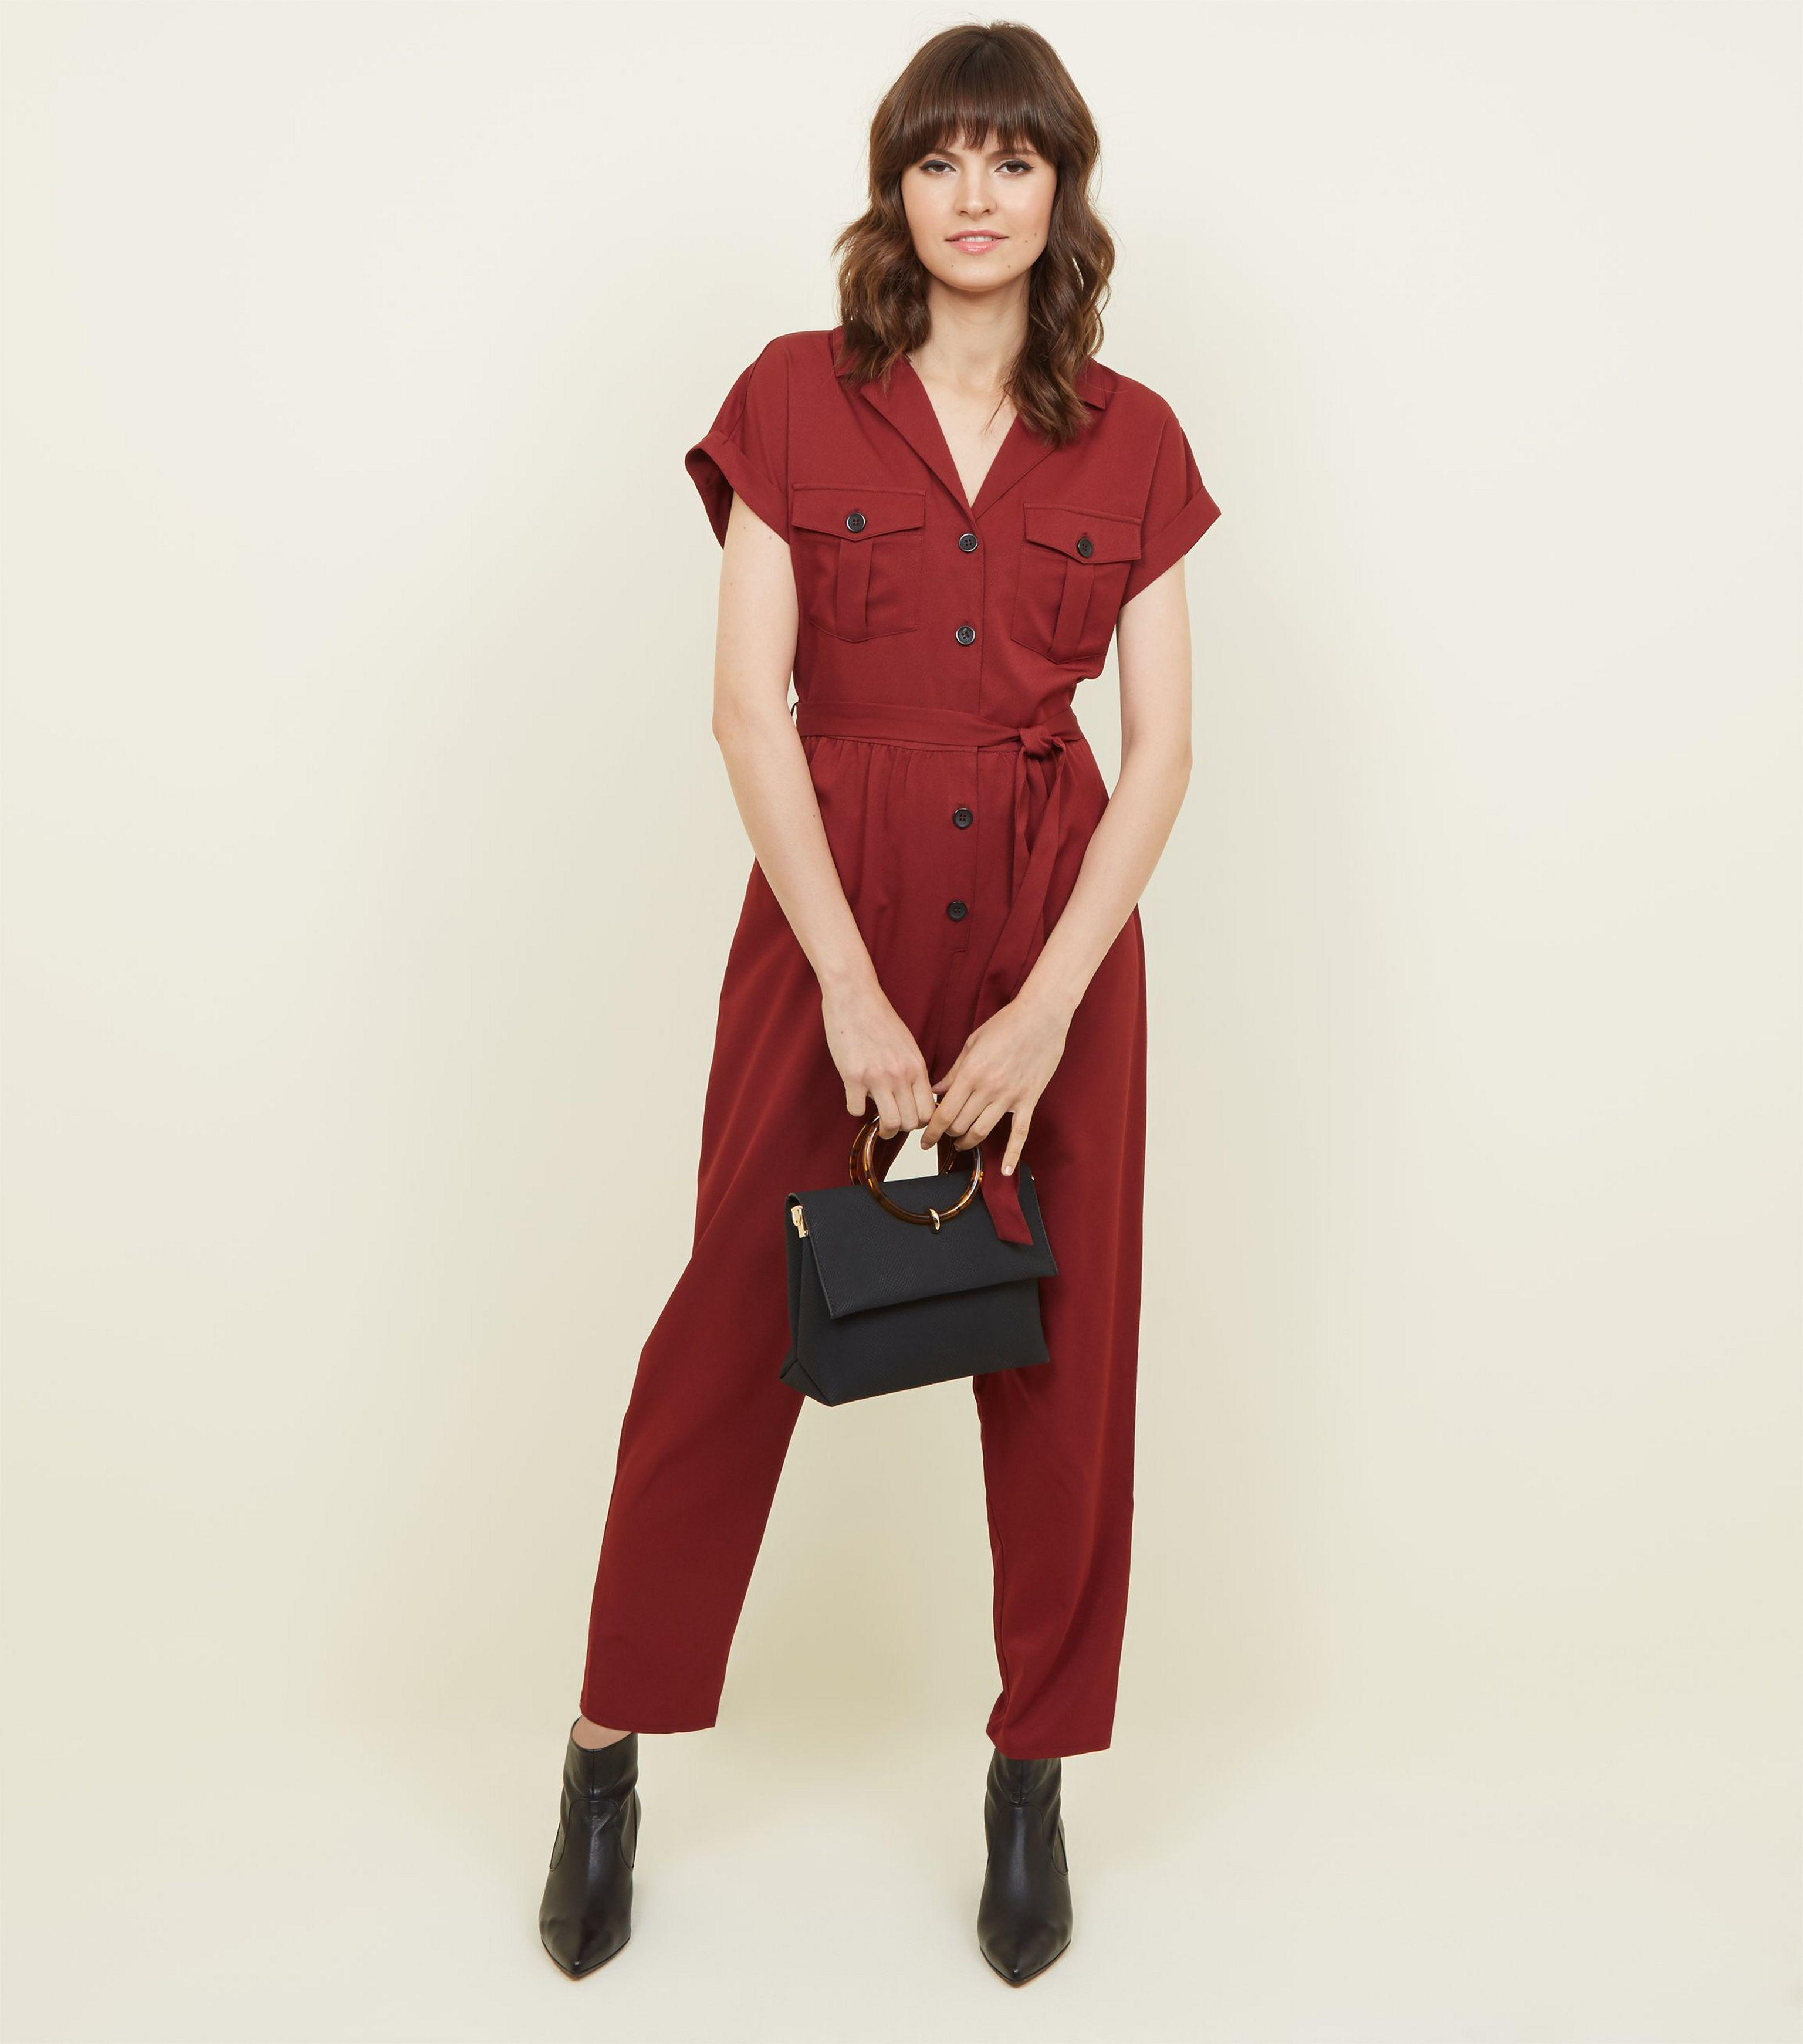 d5bb28623652 New Look Plum Twill Button Front Utility Jumpsuit in Red - Lyst